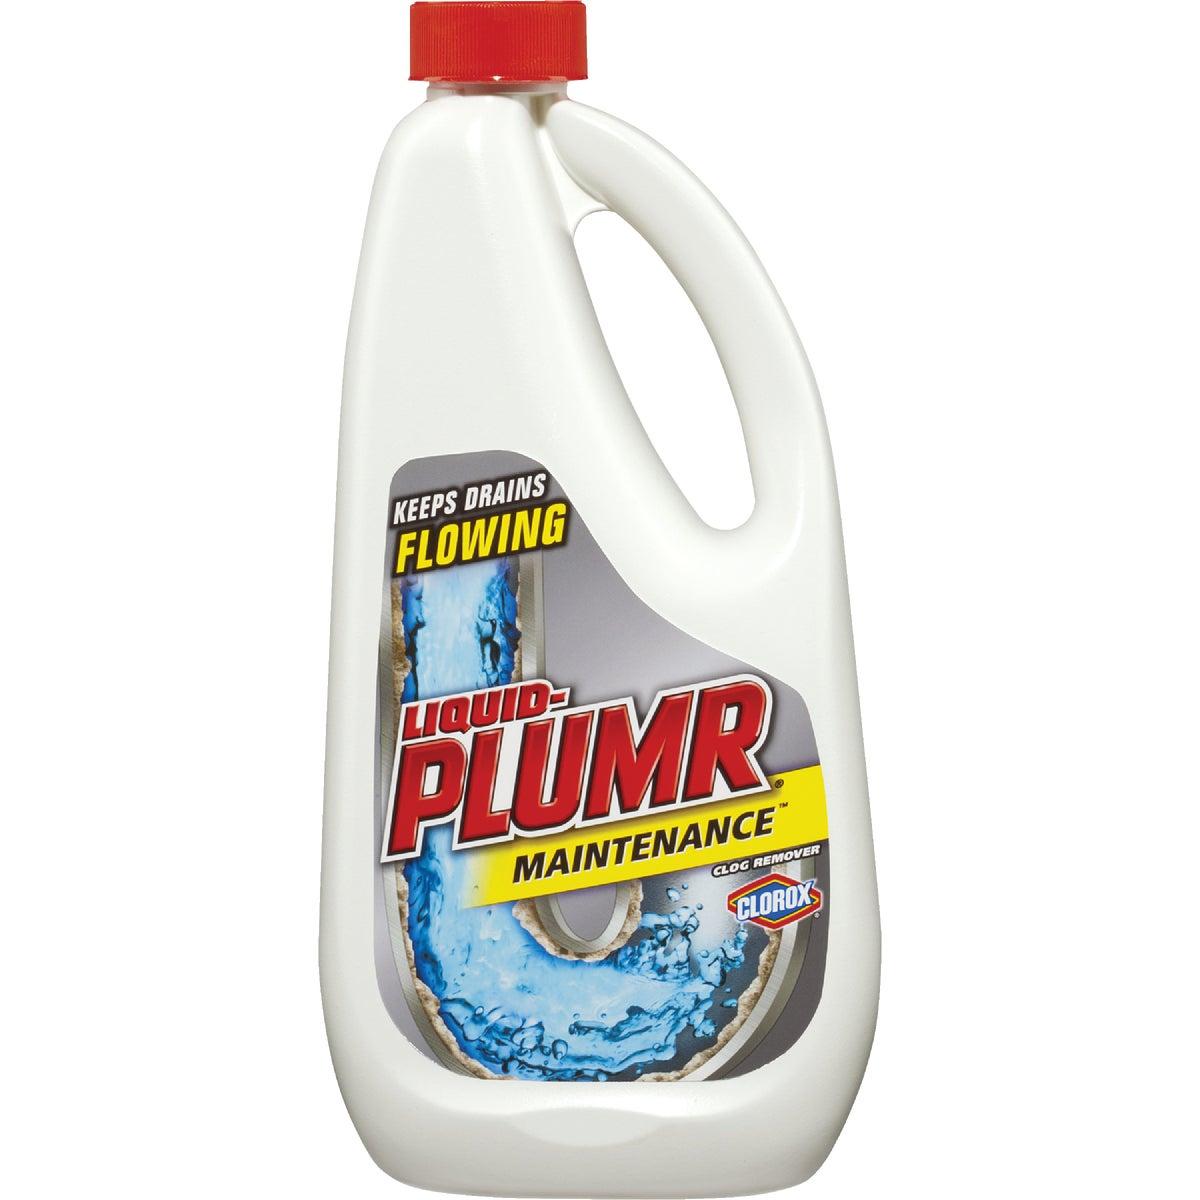 32OZ MAINT LIQUID PLUMR - 00242 by Clorox/home Cleaning